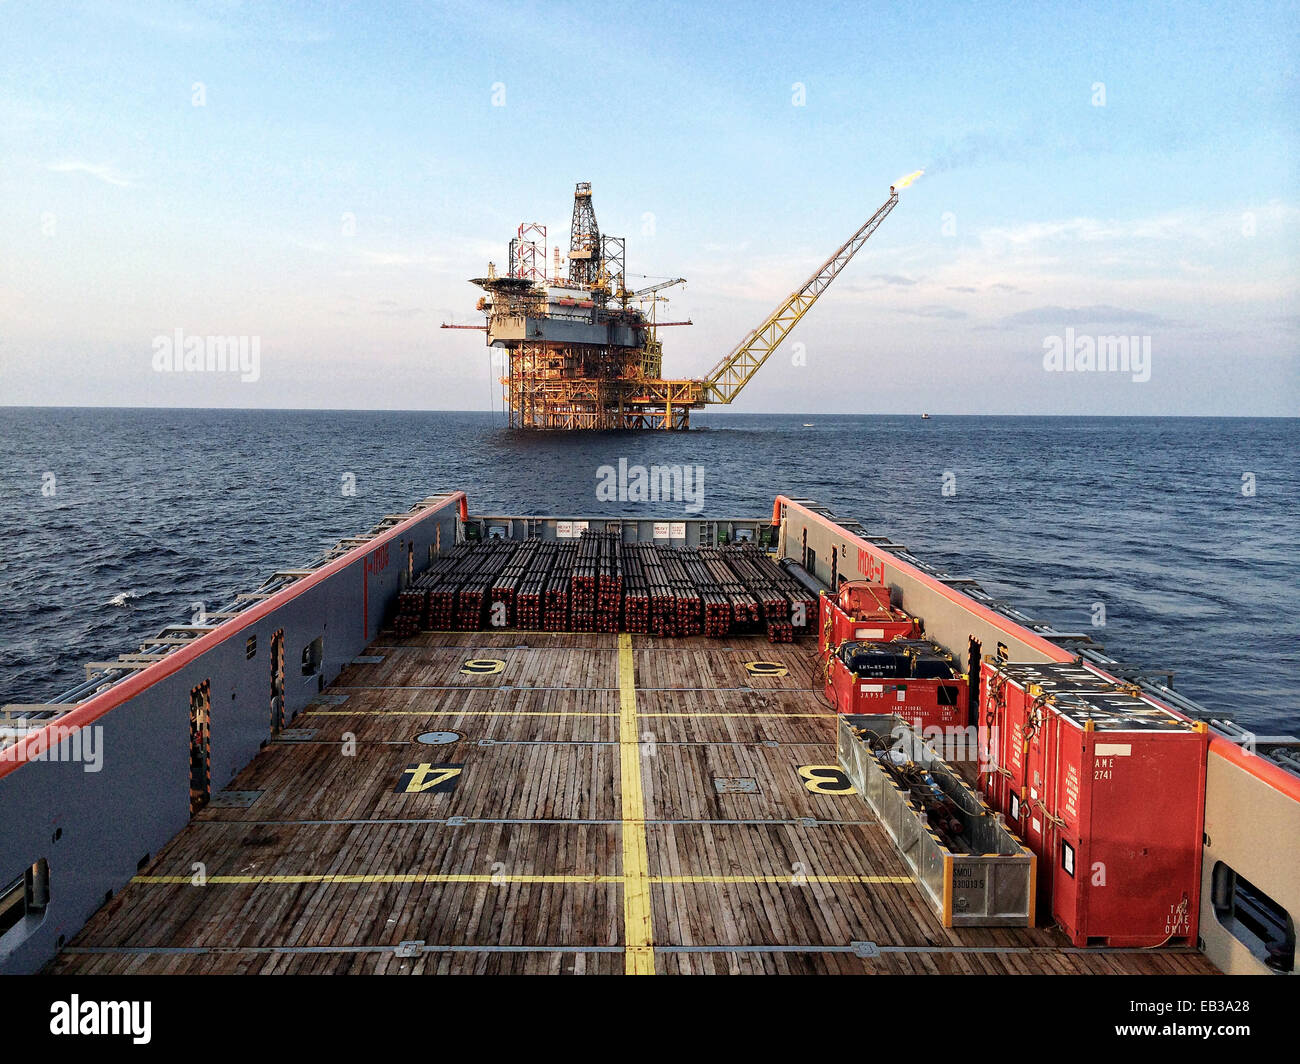 Oil platform seen from main deck of platform supply vessel - Stock Image